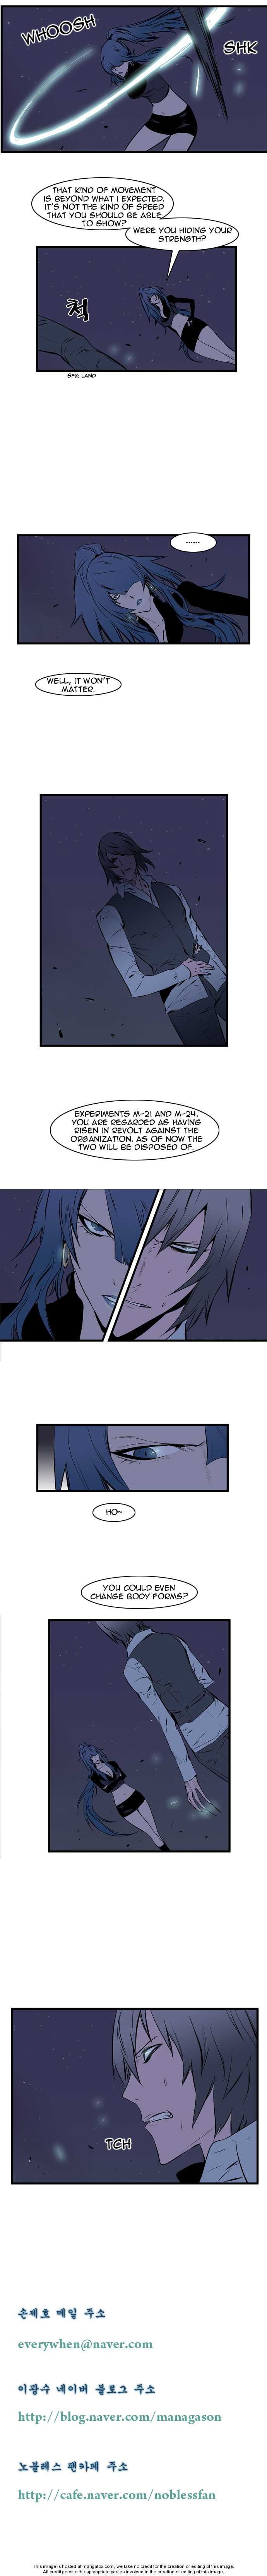 Noblesse 71 Page 4